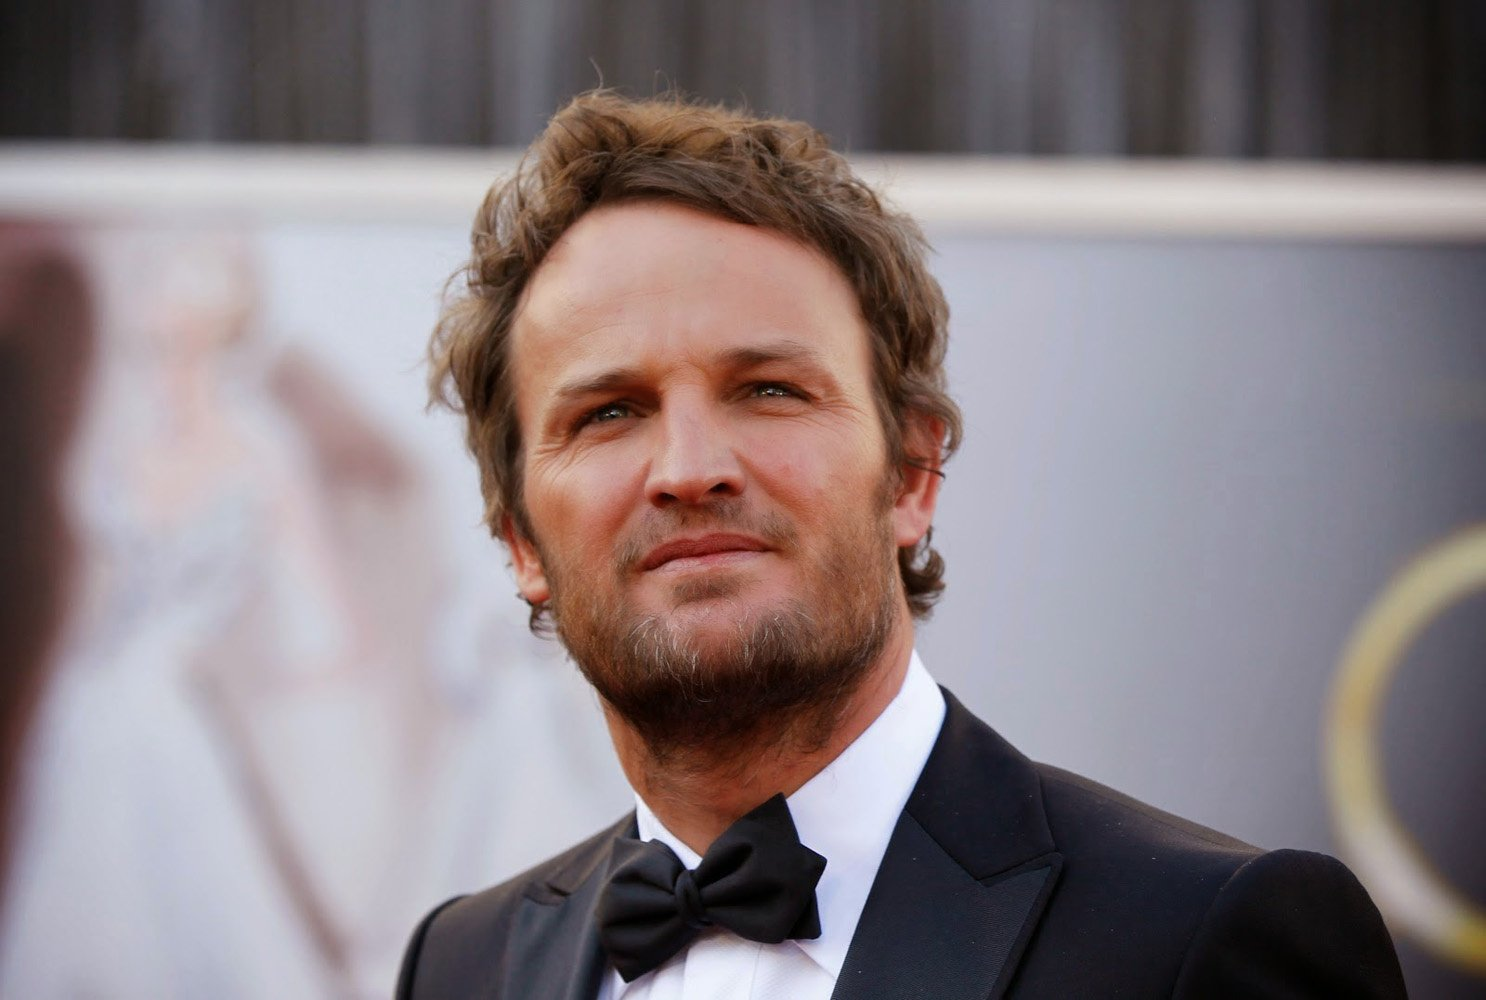 Jason Clarke, hair styled by Nathan Sager.